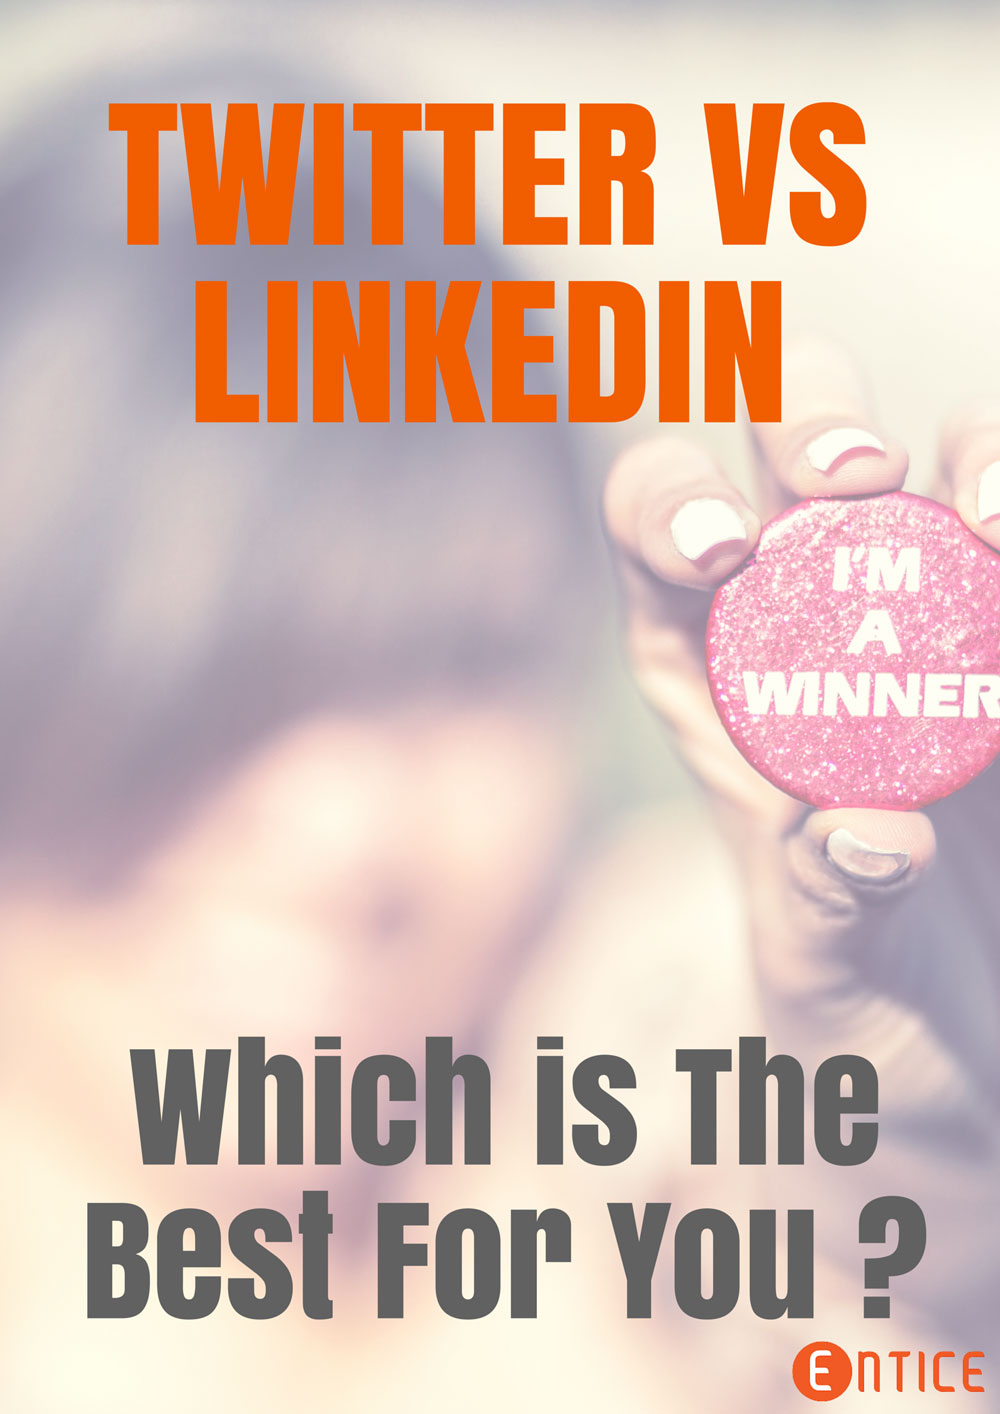 Twitter vs LinkedIn: Which Platform Is Best For You?